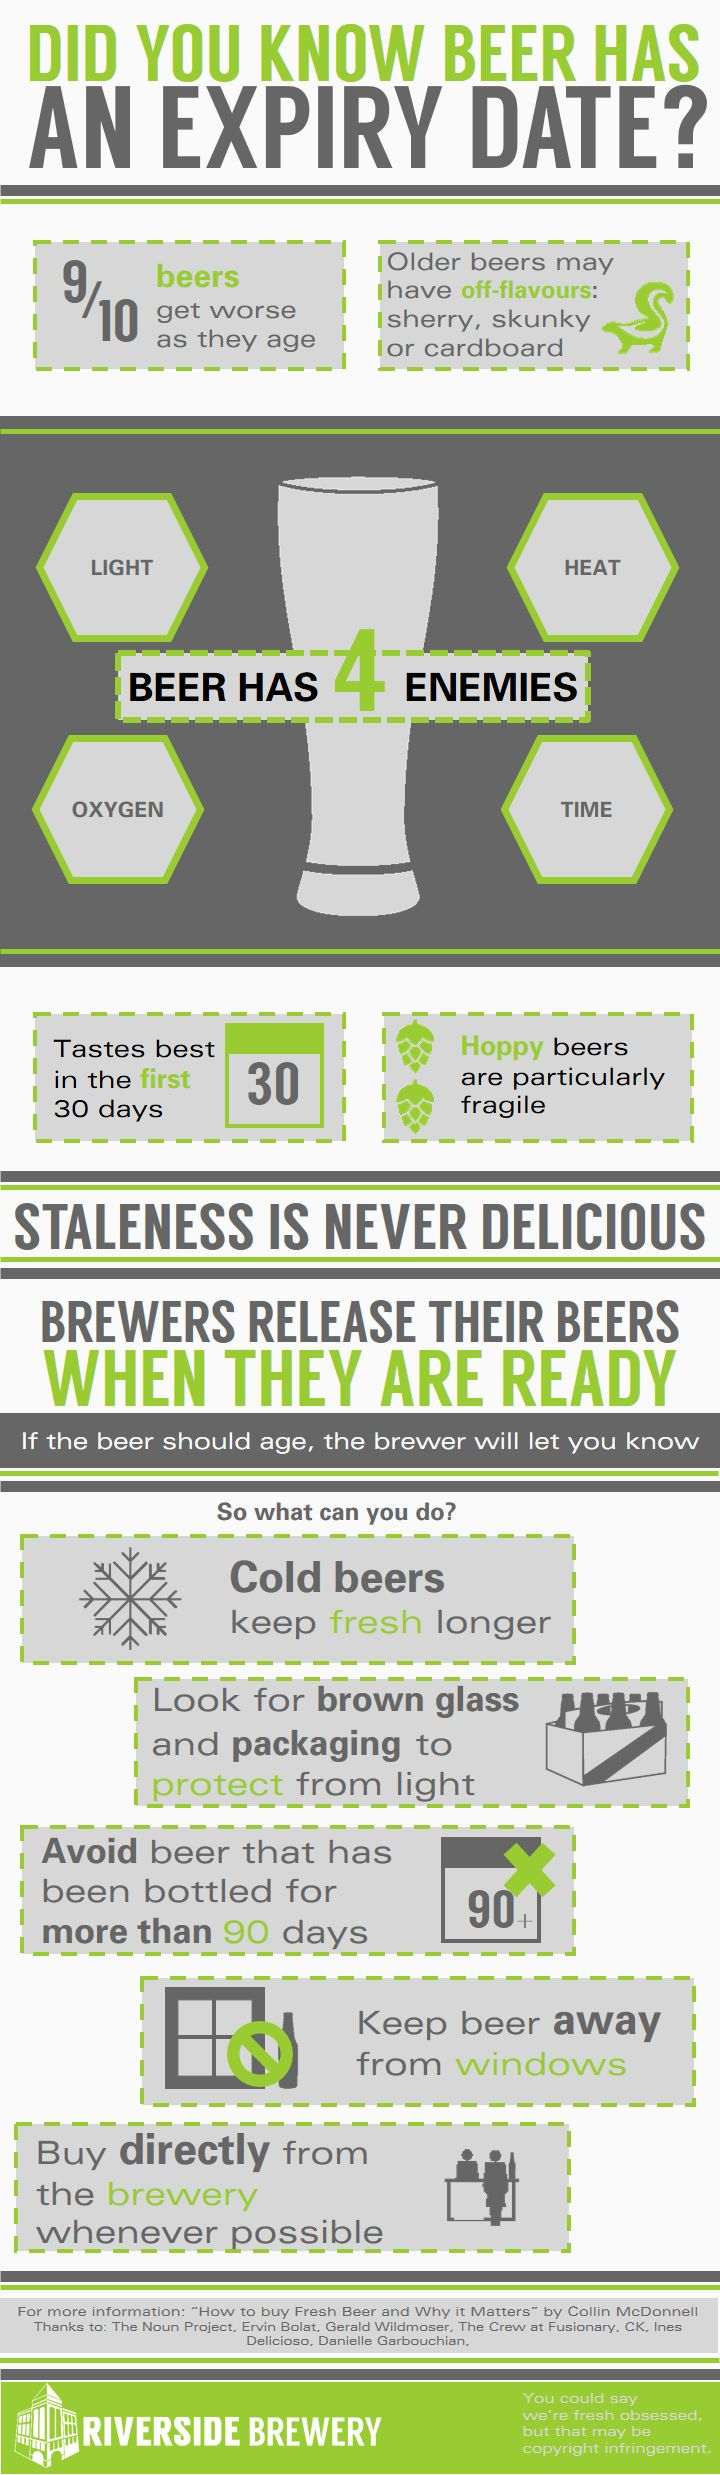 Beware of stale beer! Freshness matters! #freshbeer #craftbeer #infographic